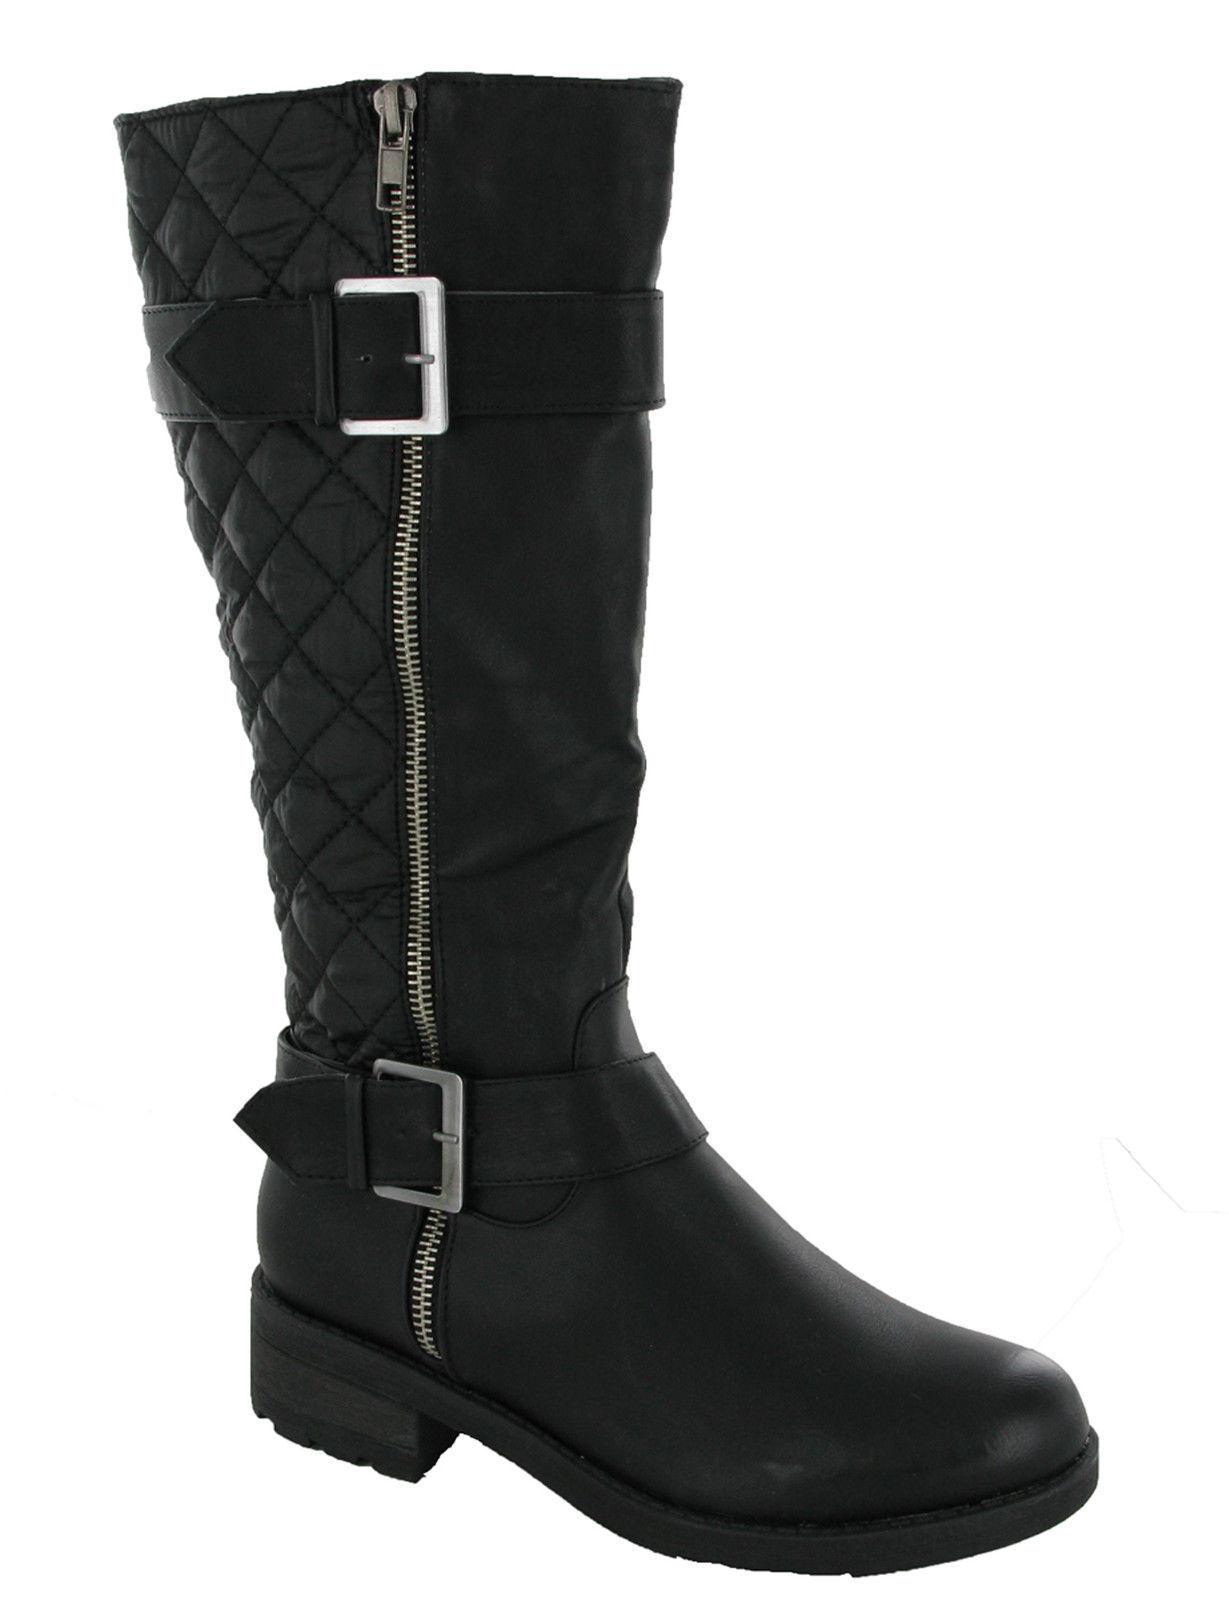 Soft Quilted Fur Lined Zip Riding Casual Winter Grip Womens Boot UK 3-8